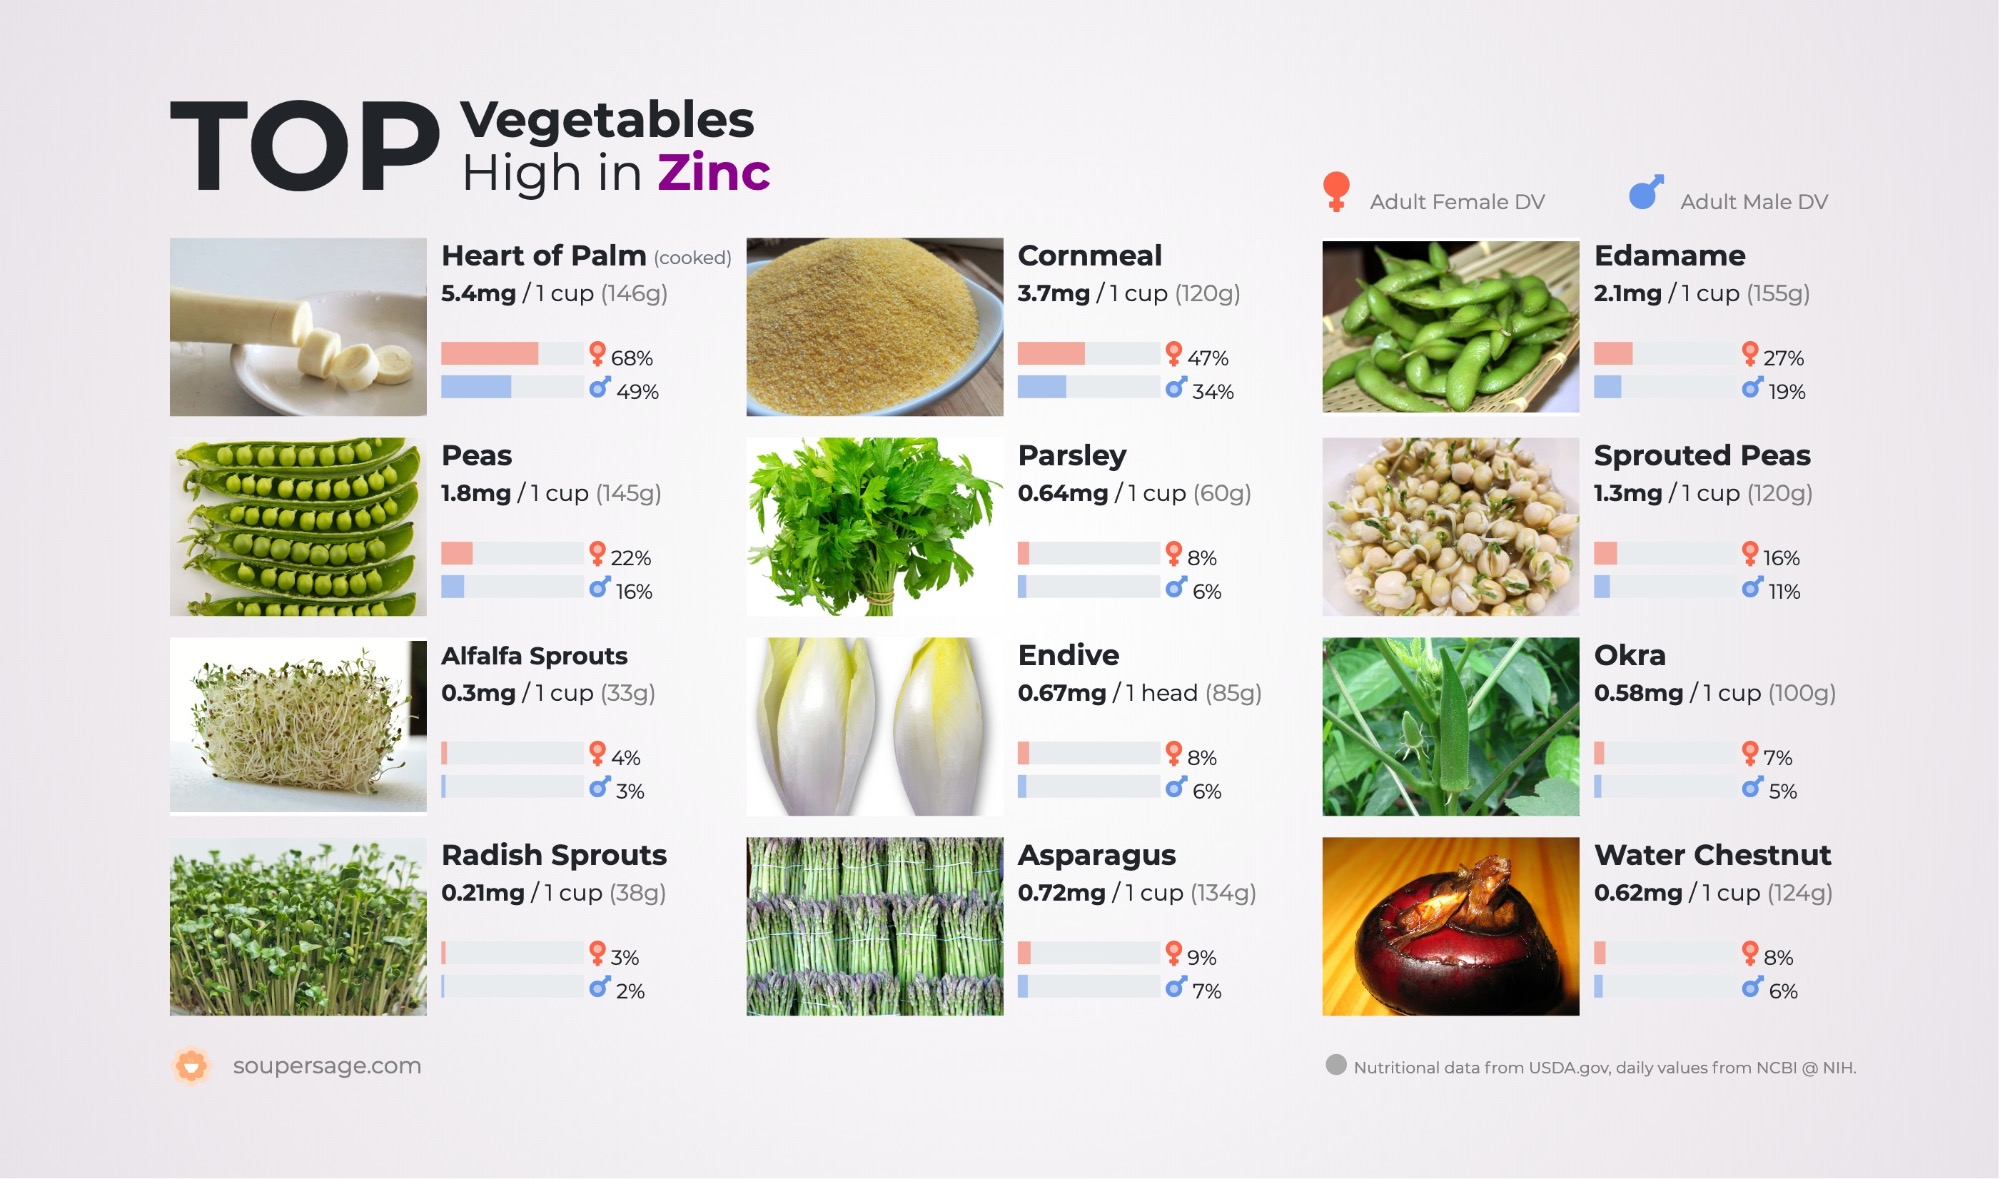 image of Top Vegetables High in Zinc